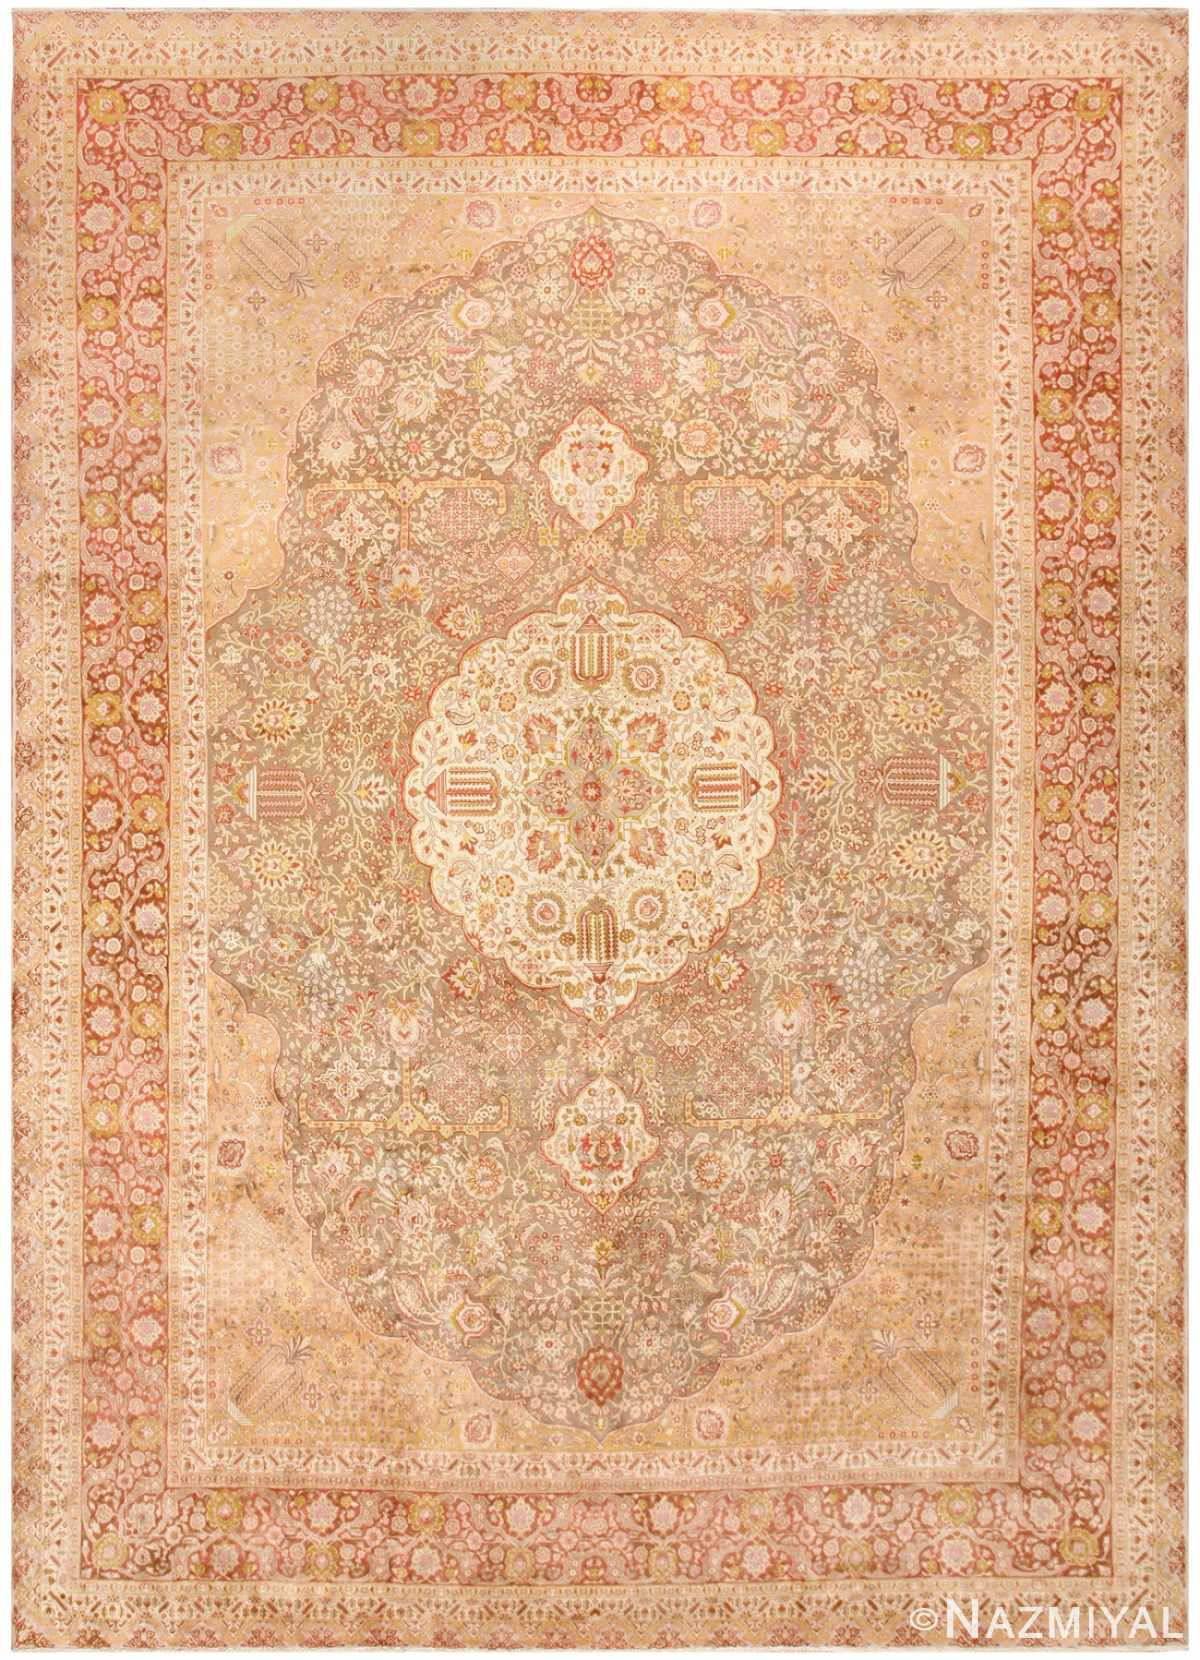 Vintage Room Sized Persian Tabriz Carpet 50259 Nazmiyal